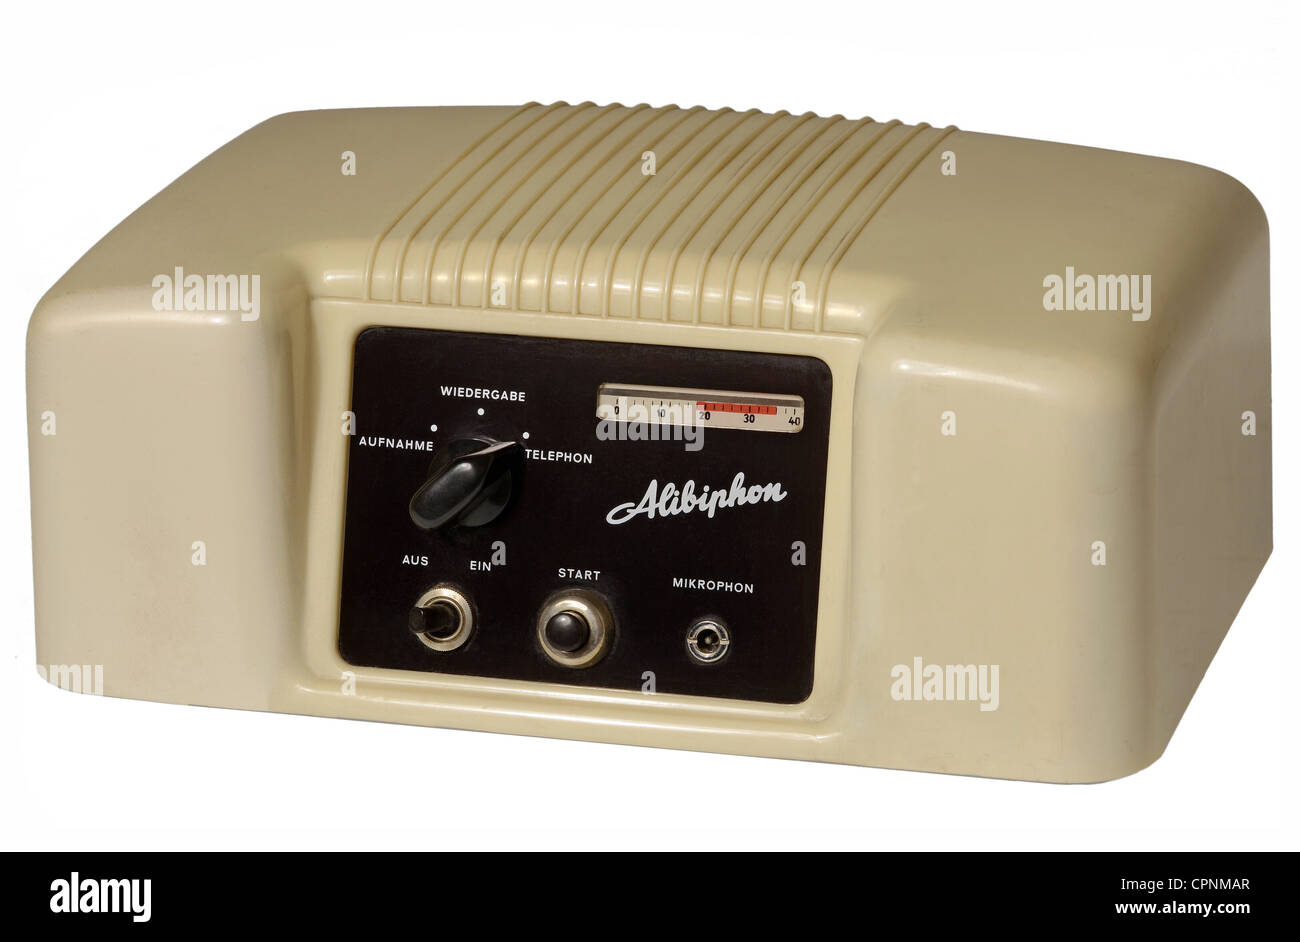 postal system, telephone, Alibiphon, first answering machine, only play device, no recording of messages, notation - Stock Image